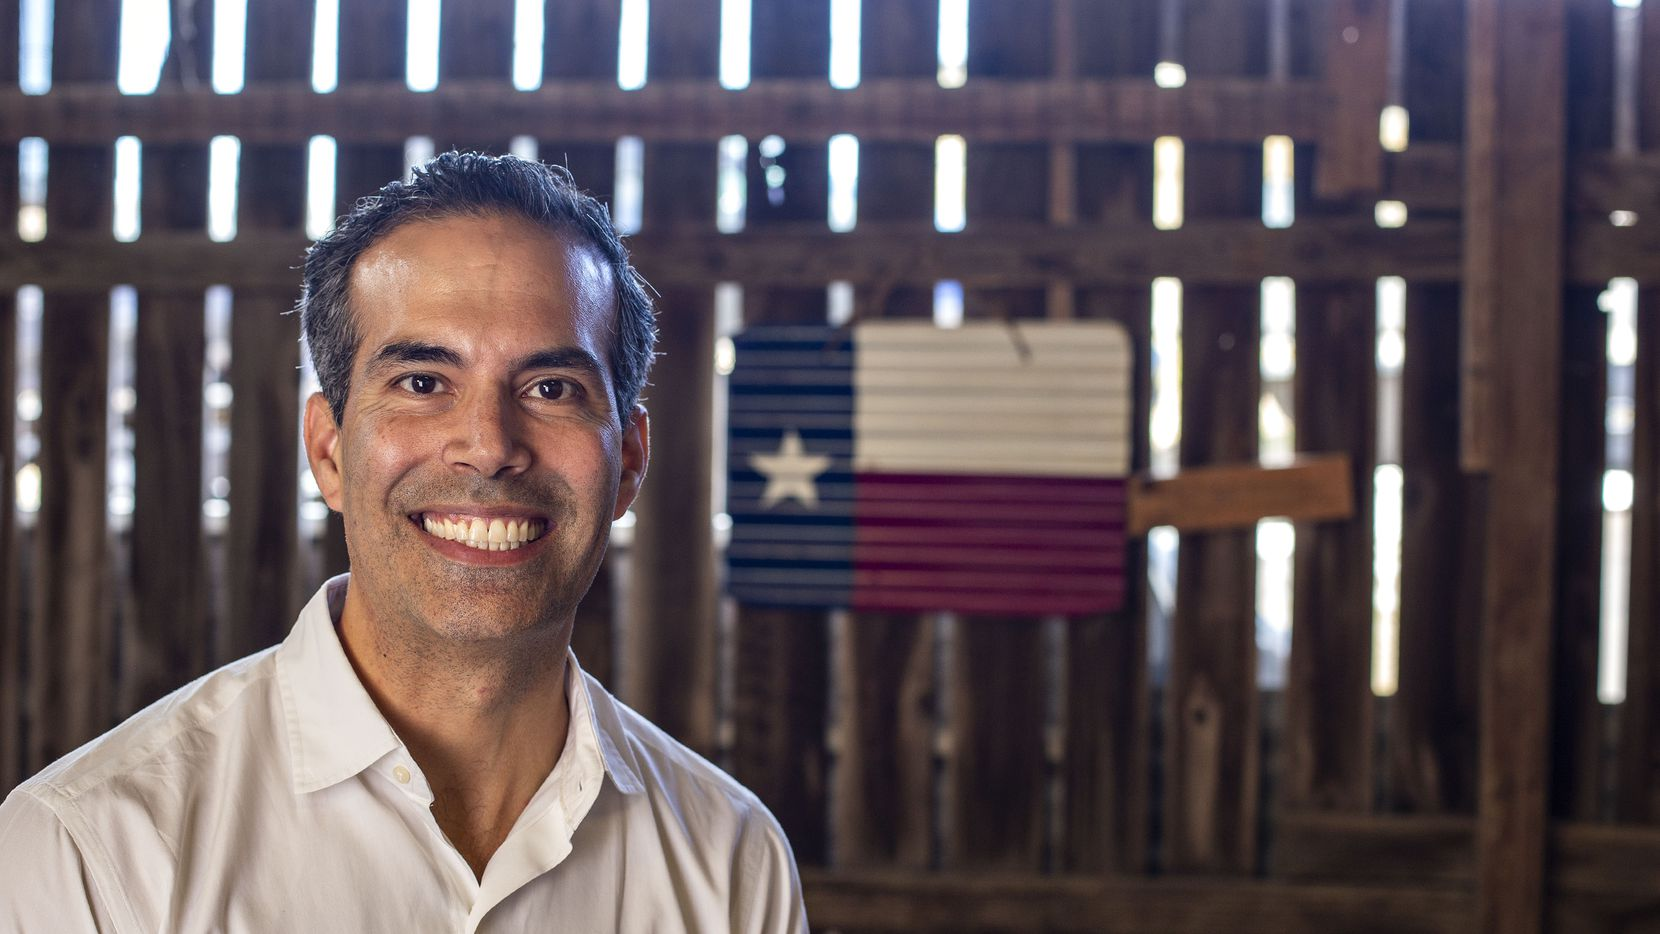 George P. Bush at Valentina's Tex Mex in Austin on Nov. 25, 2019. Some observers see Bush as a future leader of the Republican Party in Texas because of his appeal to a wide array of voters. (Thao Nguyen/Special Contributor)